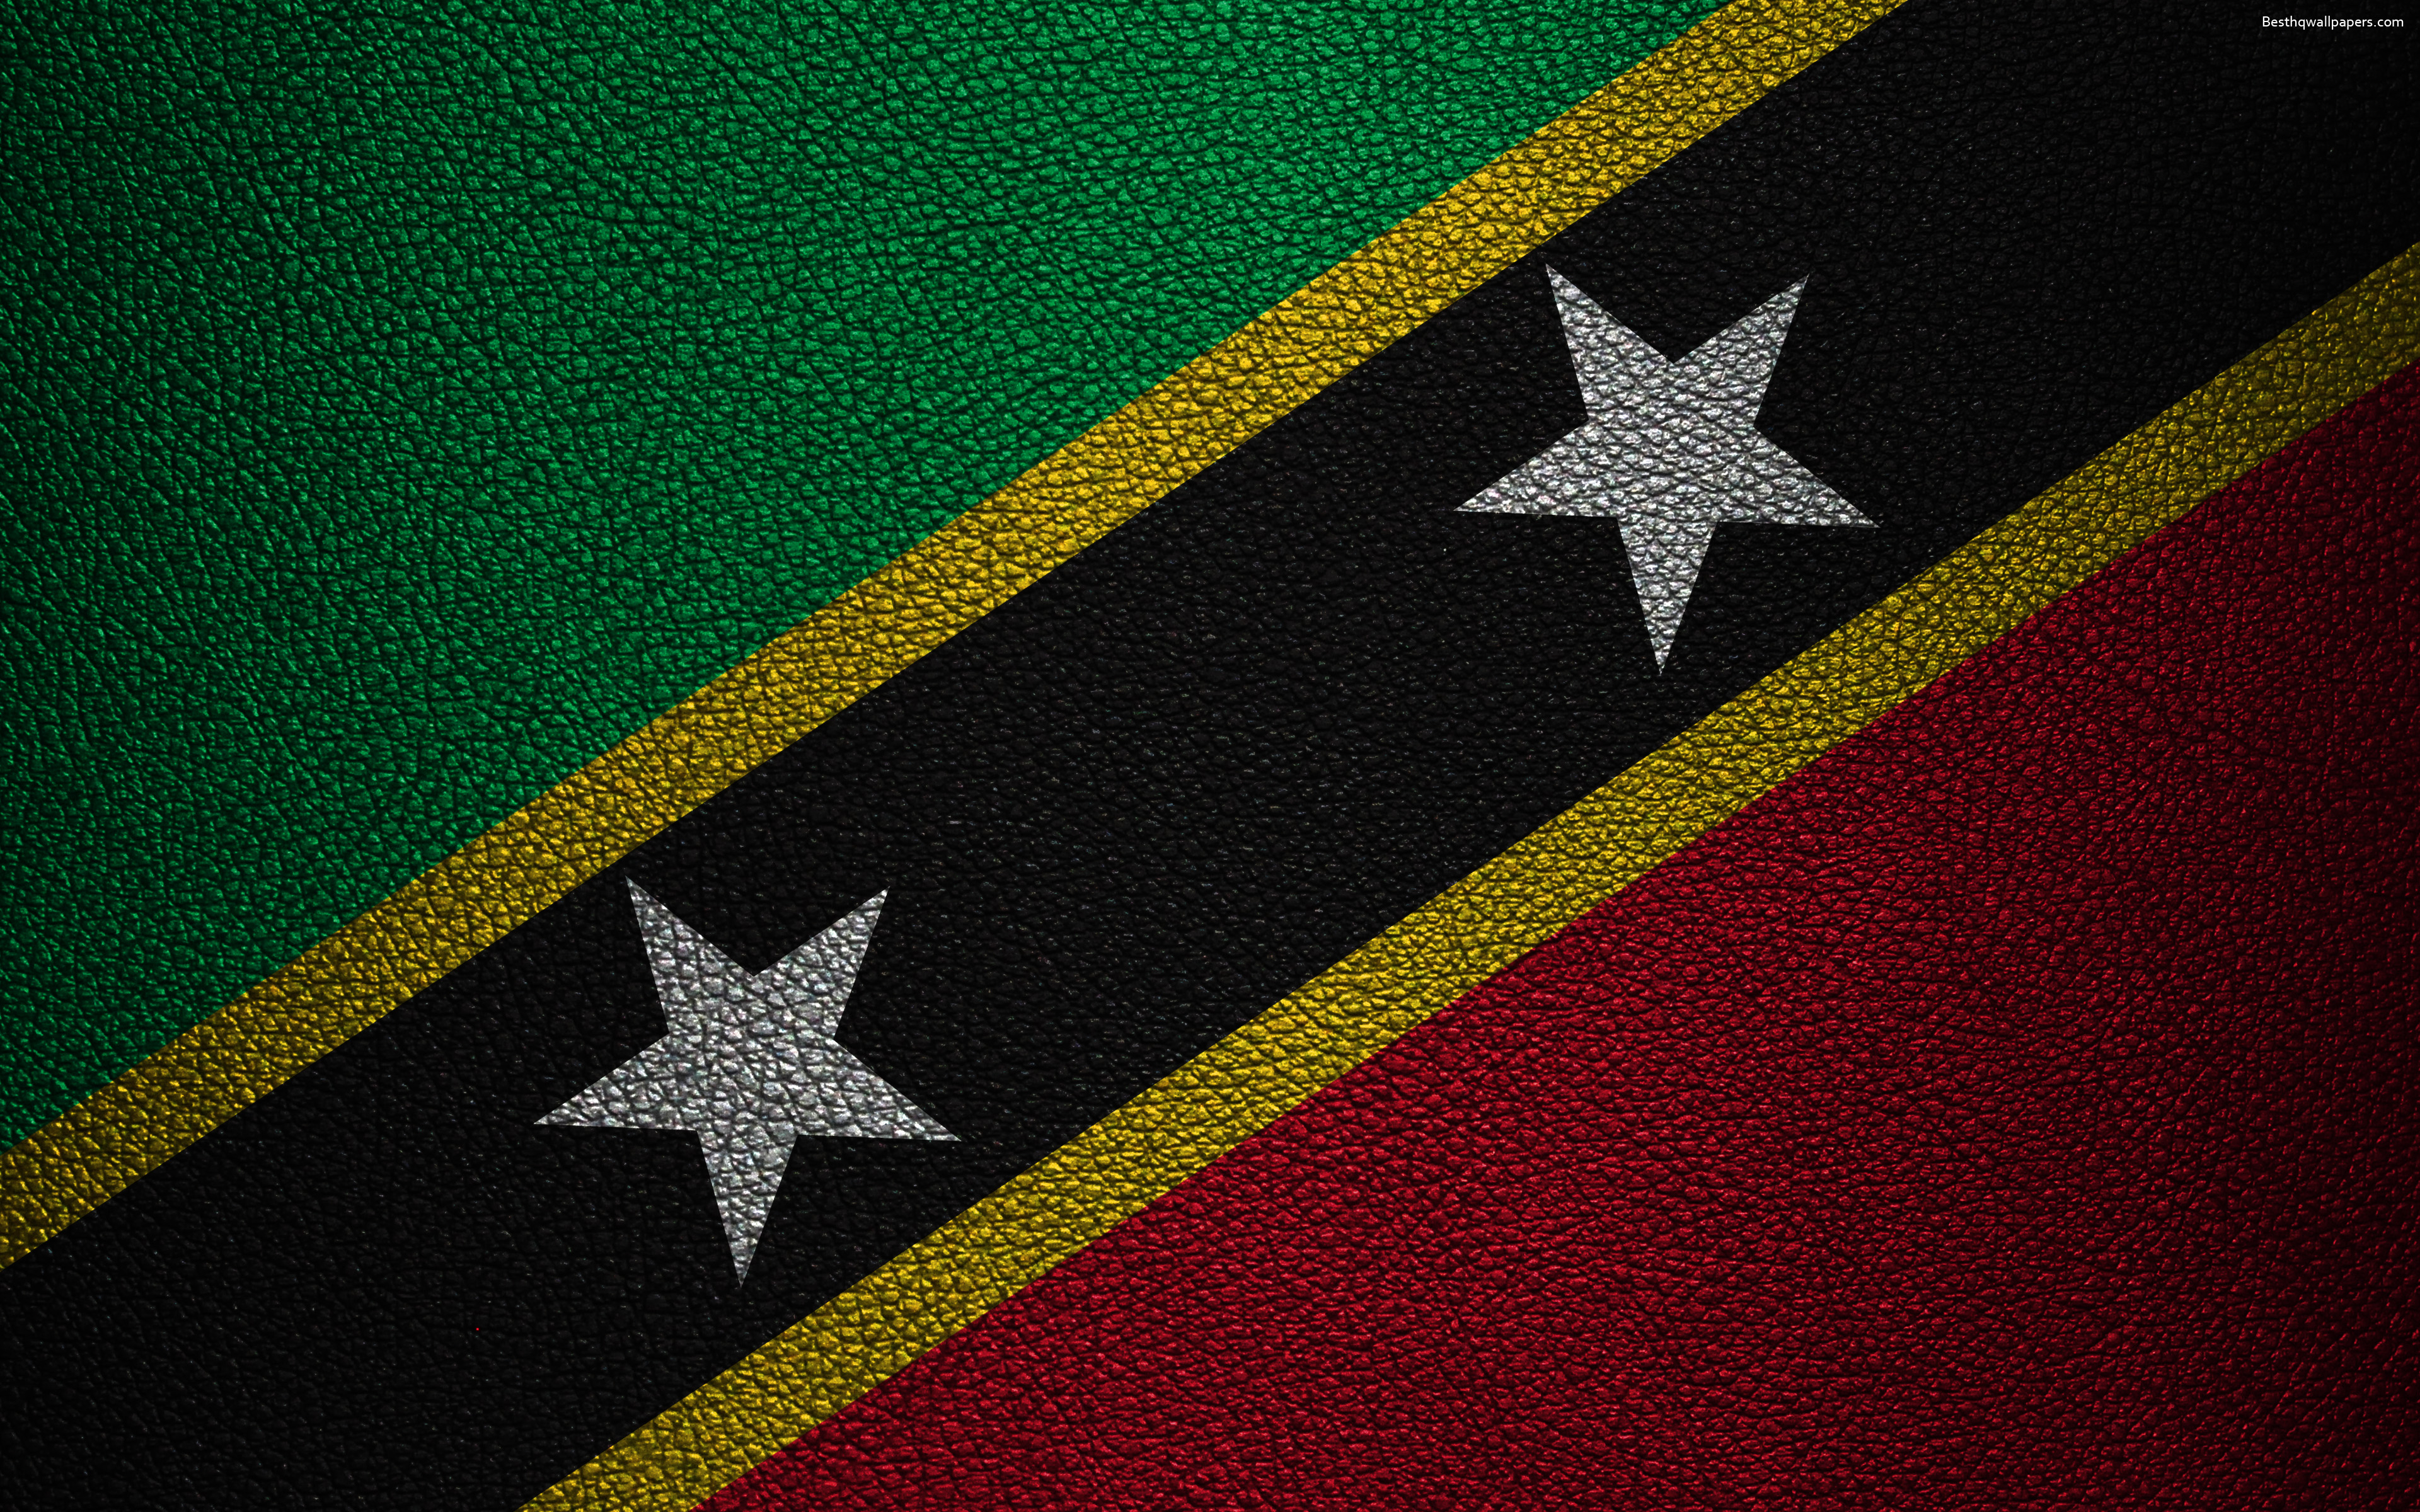 Download wallpapers Flag of Saint Kitts and Nevis 4k leather 3840x2400